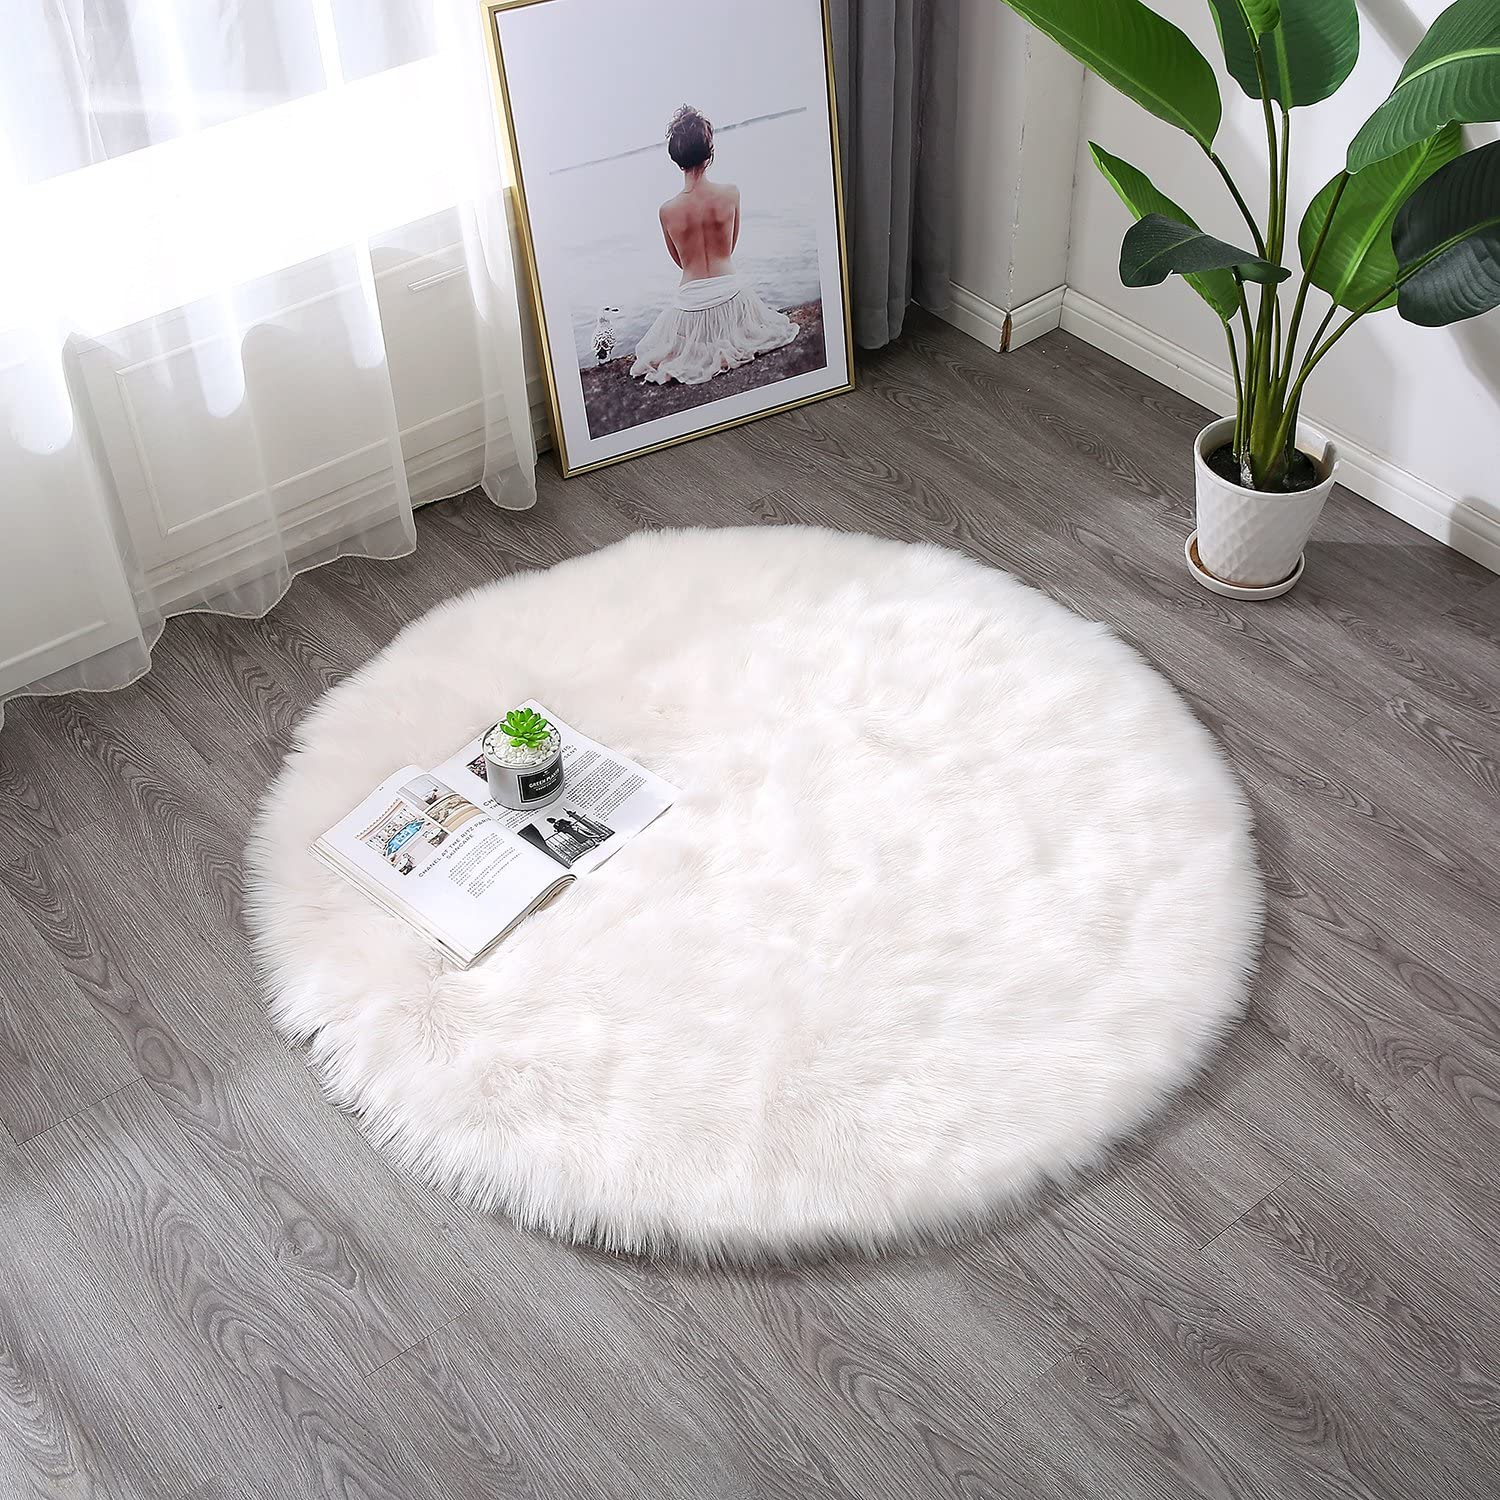 4//120x120cm Round Desk Rug Townssilk White Faux Sheepskin Fur Fluffy Area Rug Chair Cover Seat Pad Plain Shaggy Area Rugs For Bedroom Sofa Floor home Decorator Carpets Kids Play Rug Whi